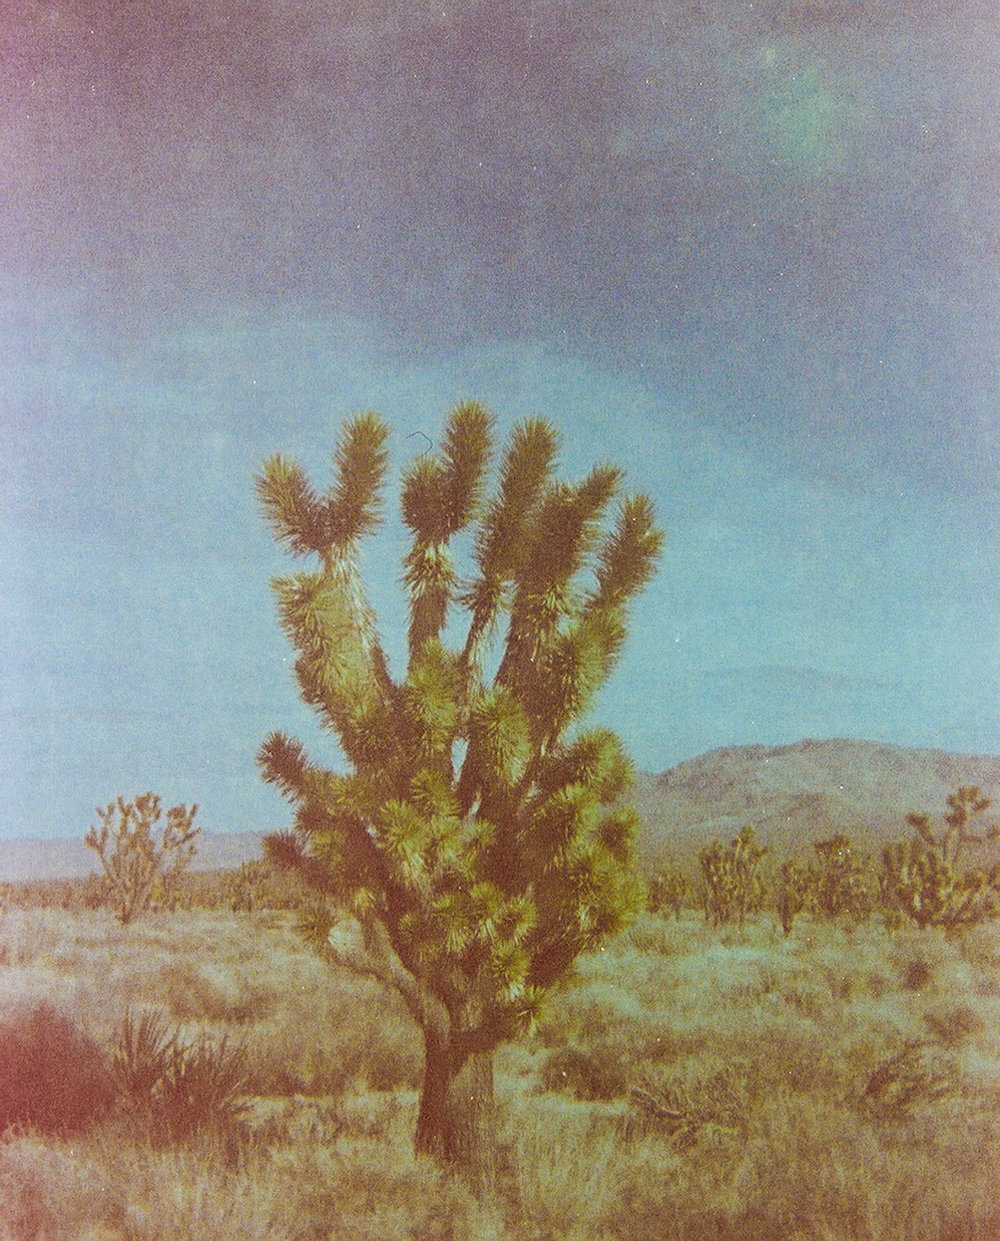 110 Film - Kodak Instamatic - 20 year old Kodak Gold